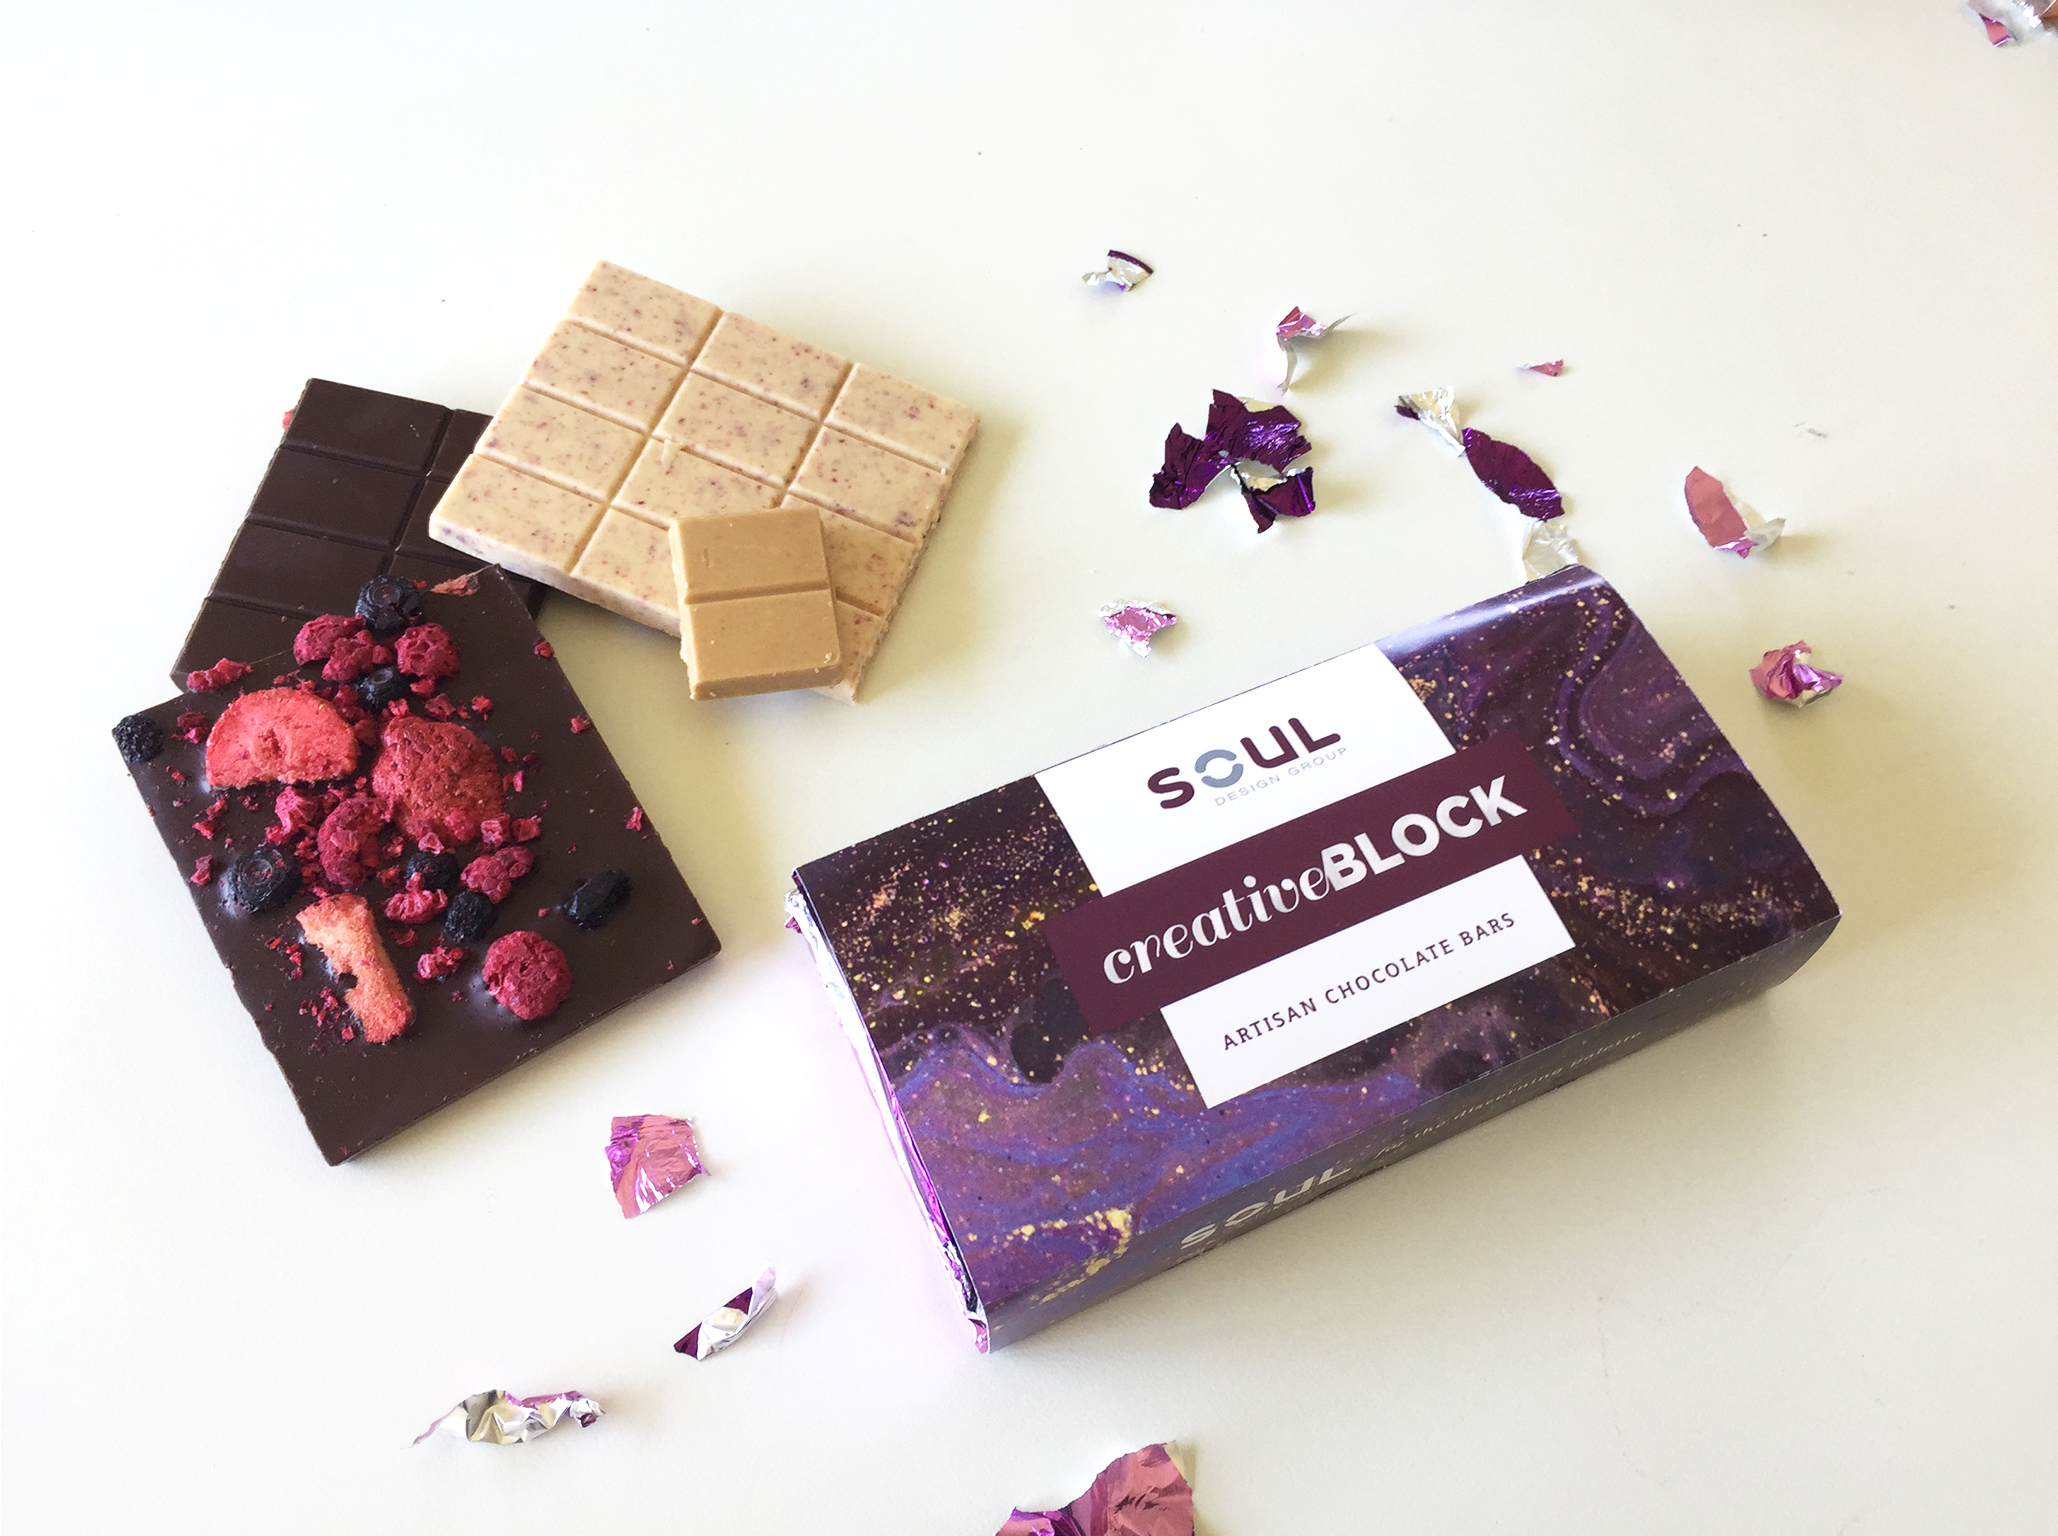 Creative Block Chocolate Bar Competition